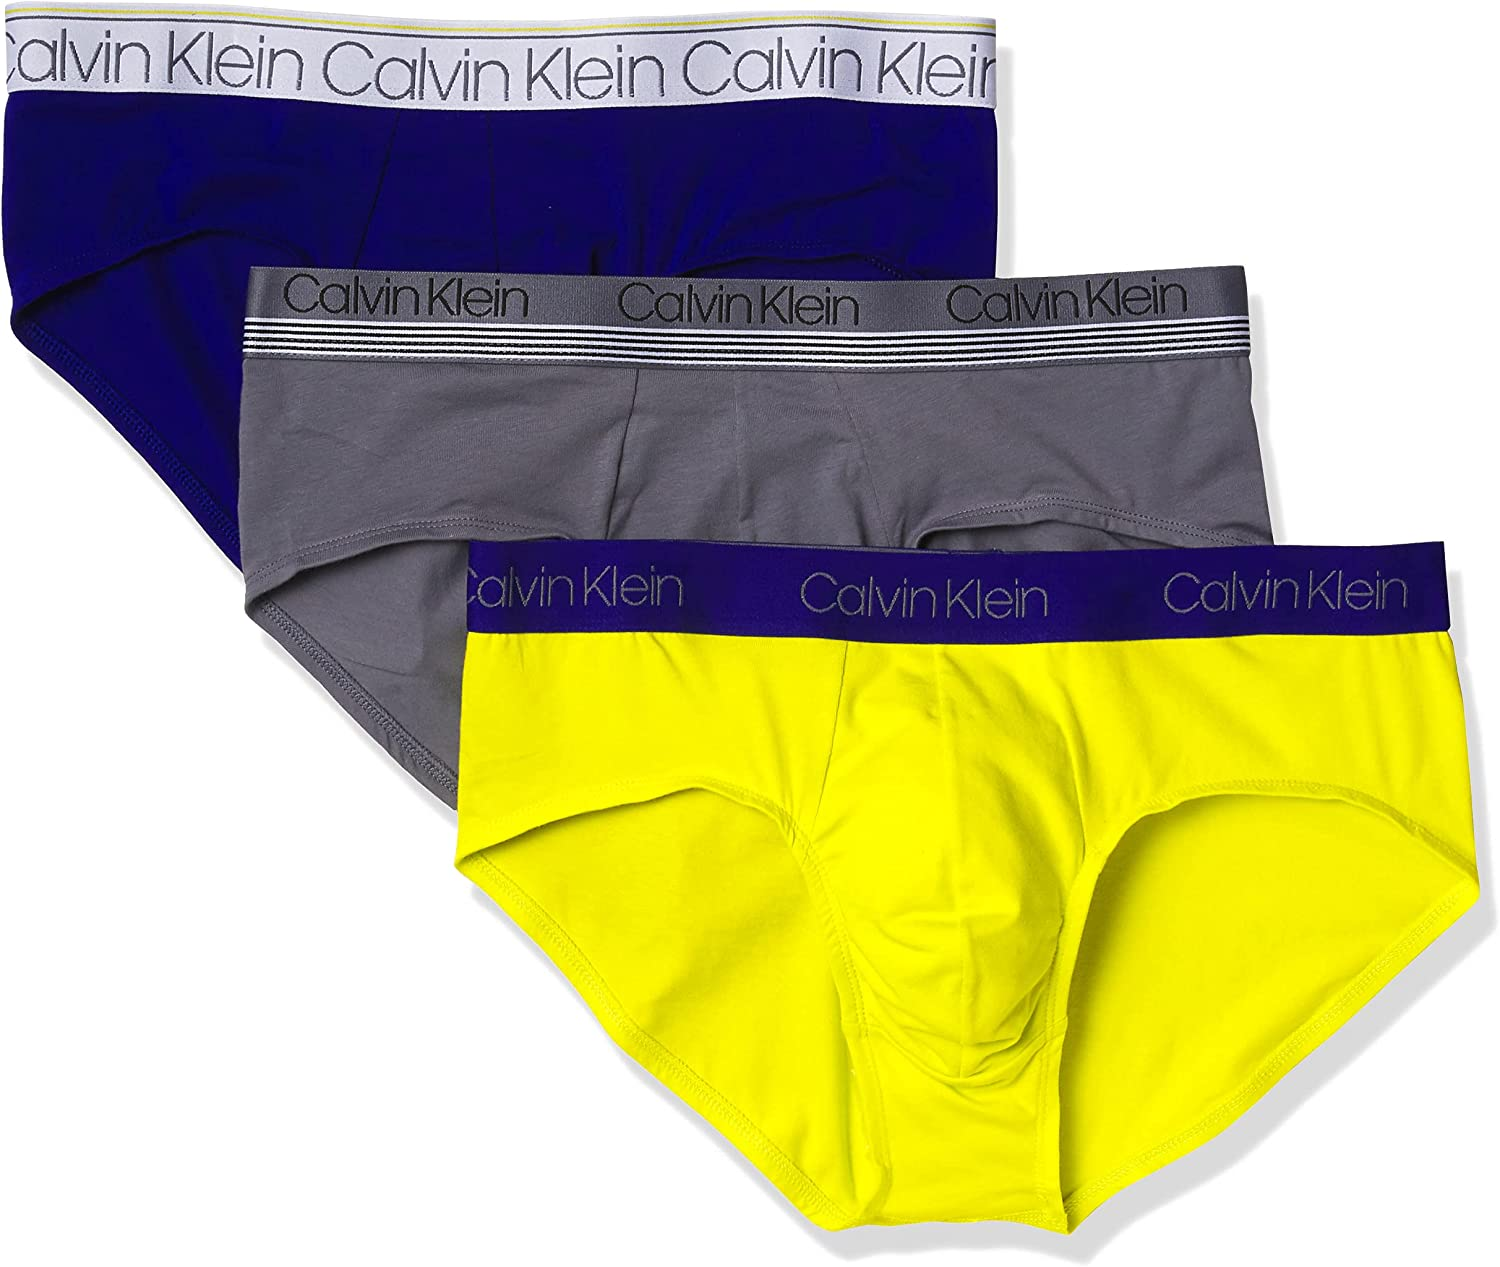 Calvin Klein Men's Underwear Multipack All items in the store Brief Cool Fresh lowest price Stay Hip